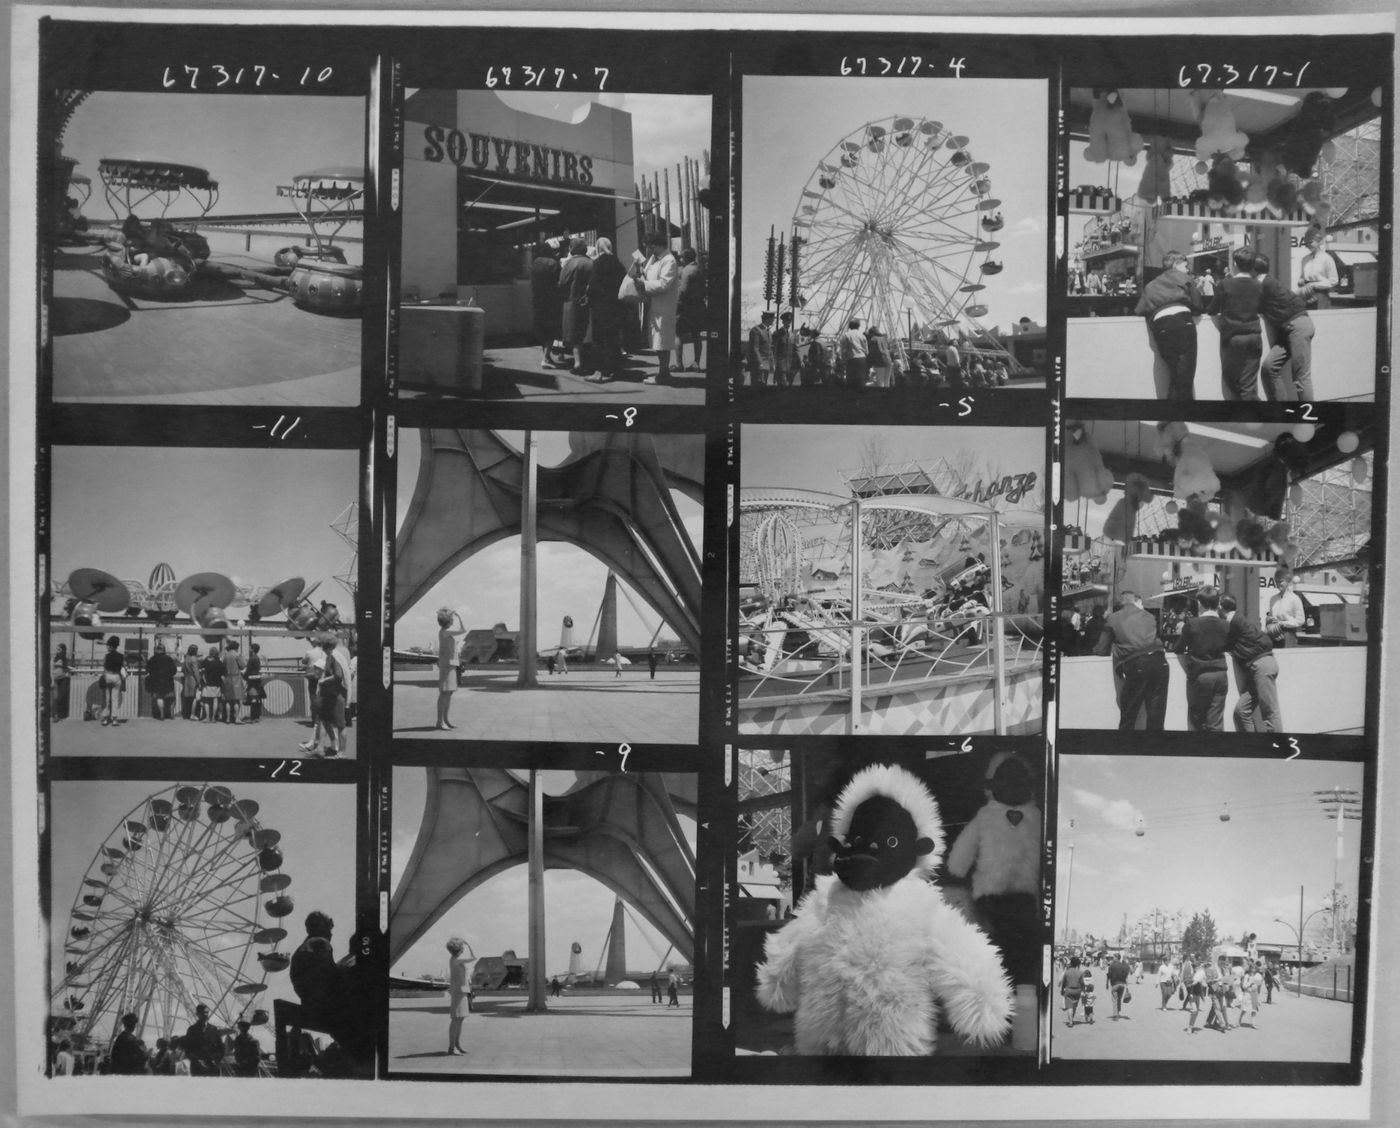 Contact sheet with photographs taken principally at La Ronde, Expo 67, Montréal, Québec